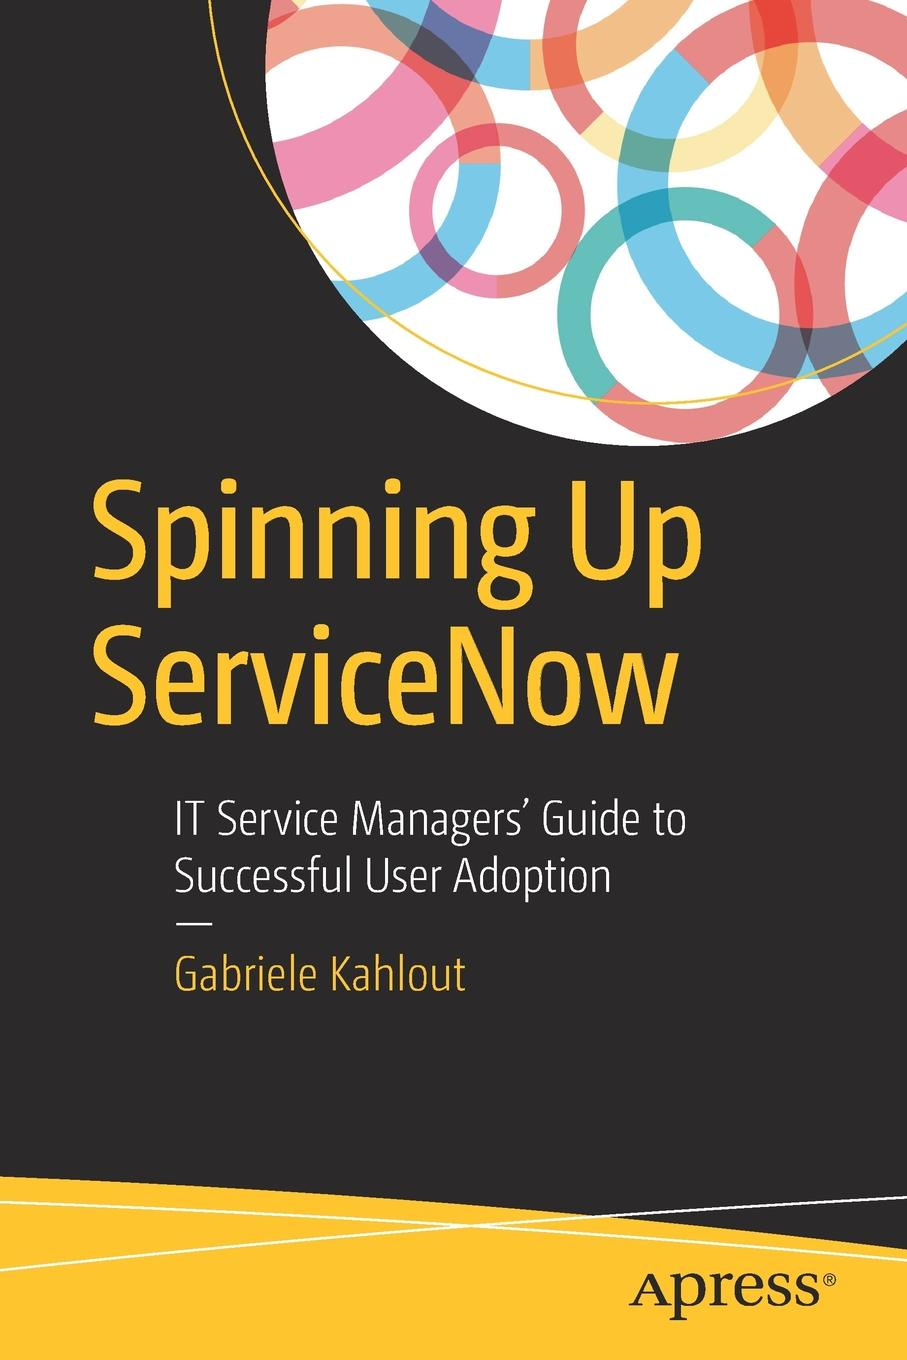 Gabriele Kahlout Spinning Up ServiceNow. IT Service Managers' Guide to Successful User Adoption